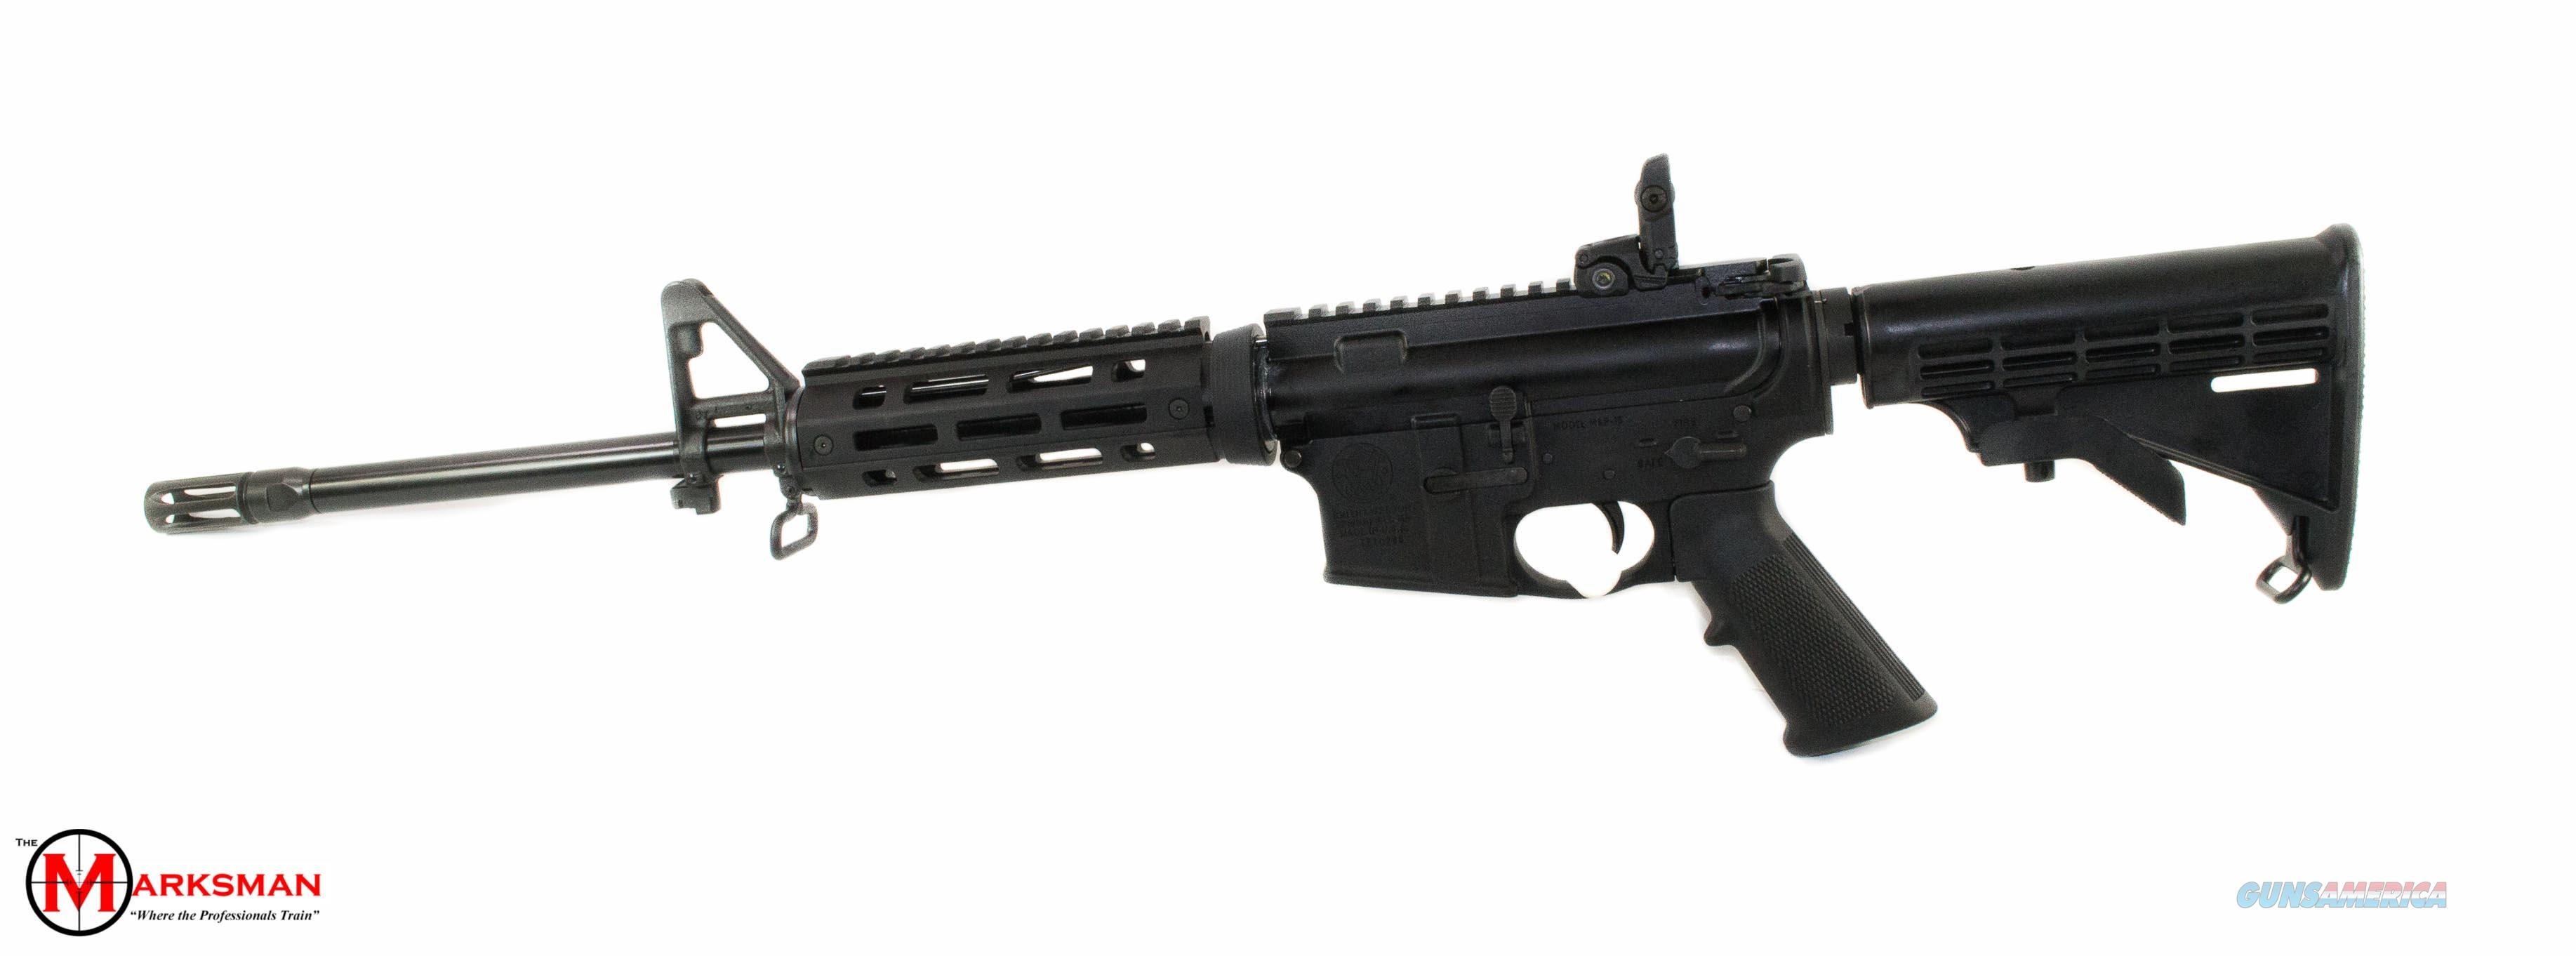 Smith and Wesson M&P15X, 5.56mm NATO NEW  Guns > Rifles > Smith & Wesson Rifles > M&P